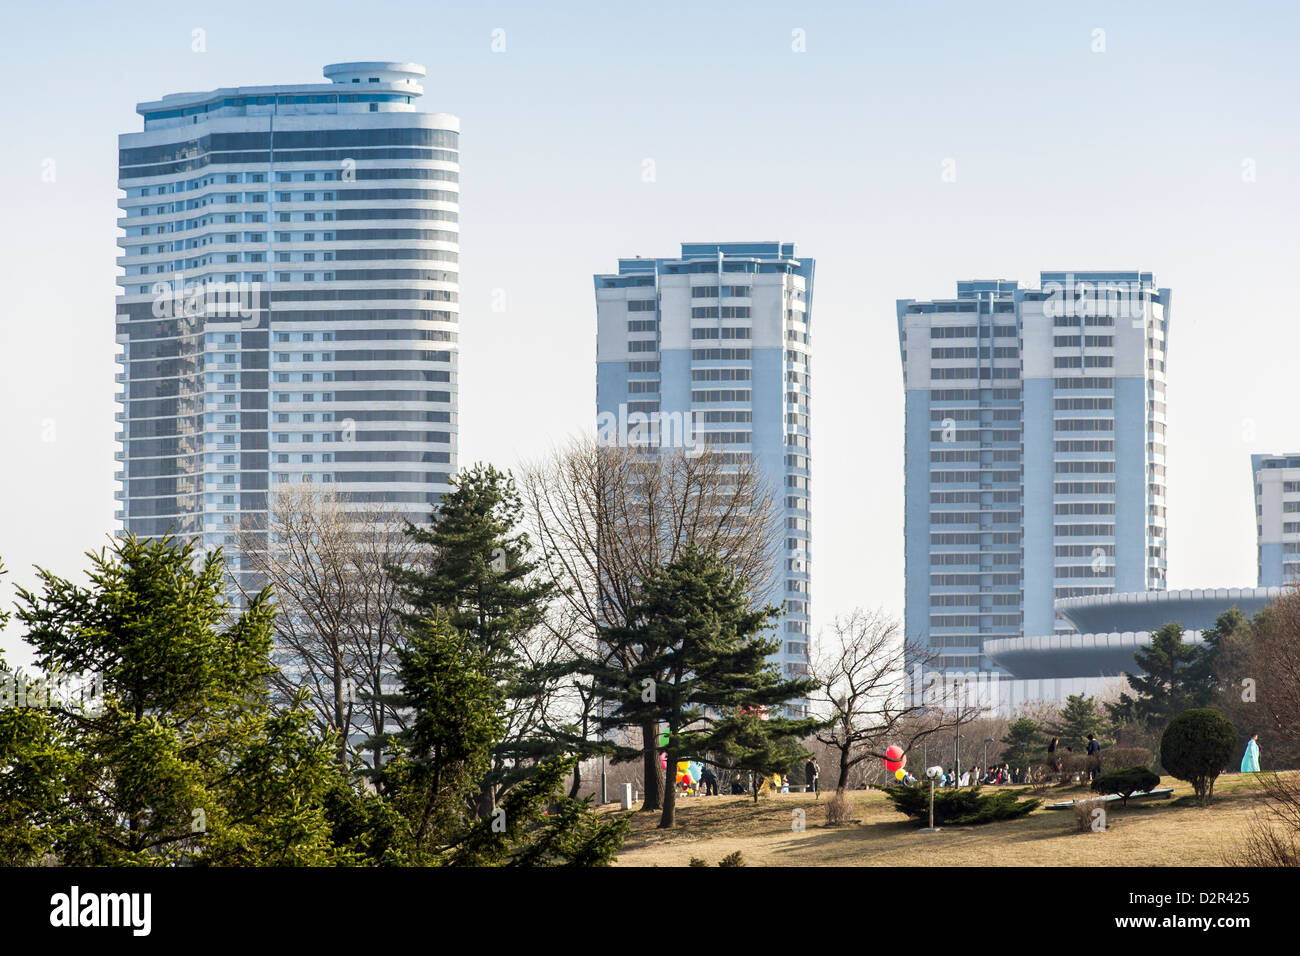 Modern apartment buildings in the city centre, Pyongyang, Democratic People's Republic of Korea (DPRK), North - Stock Image